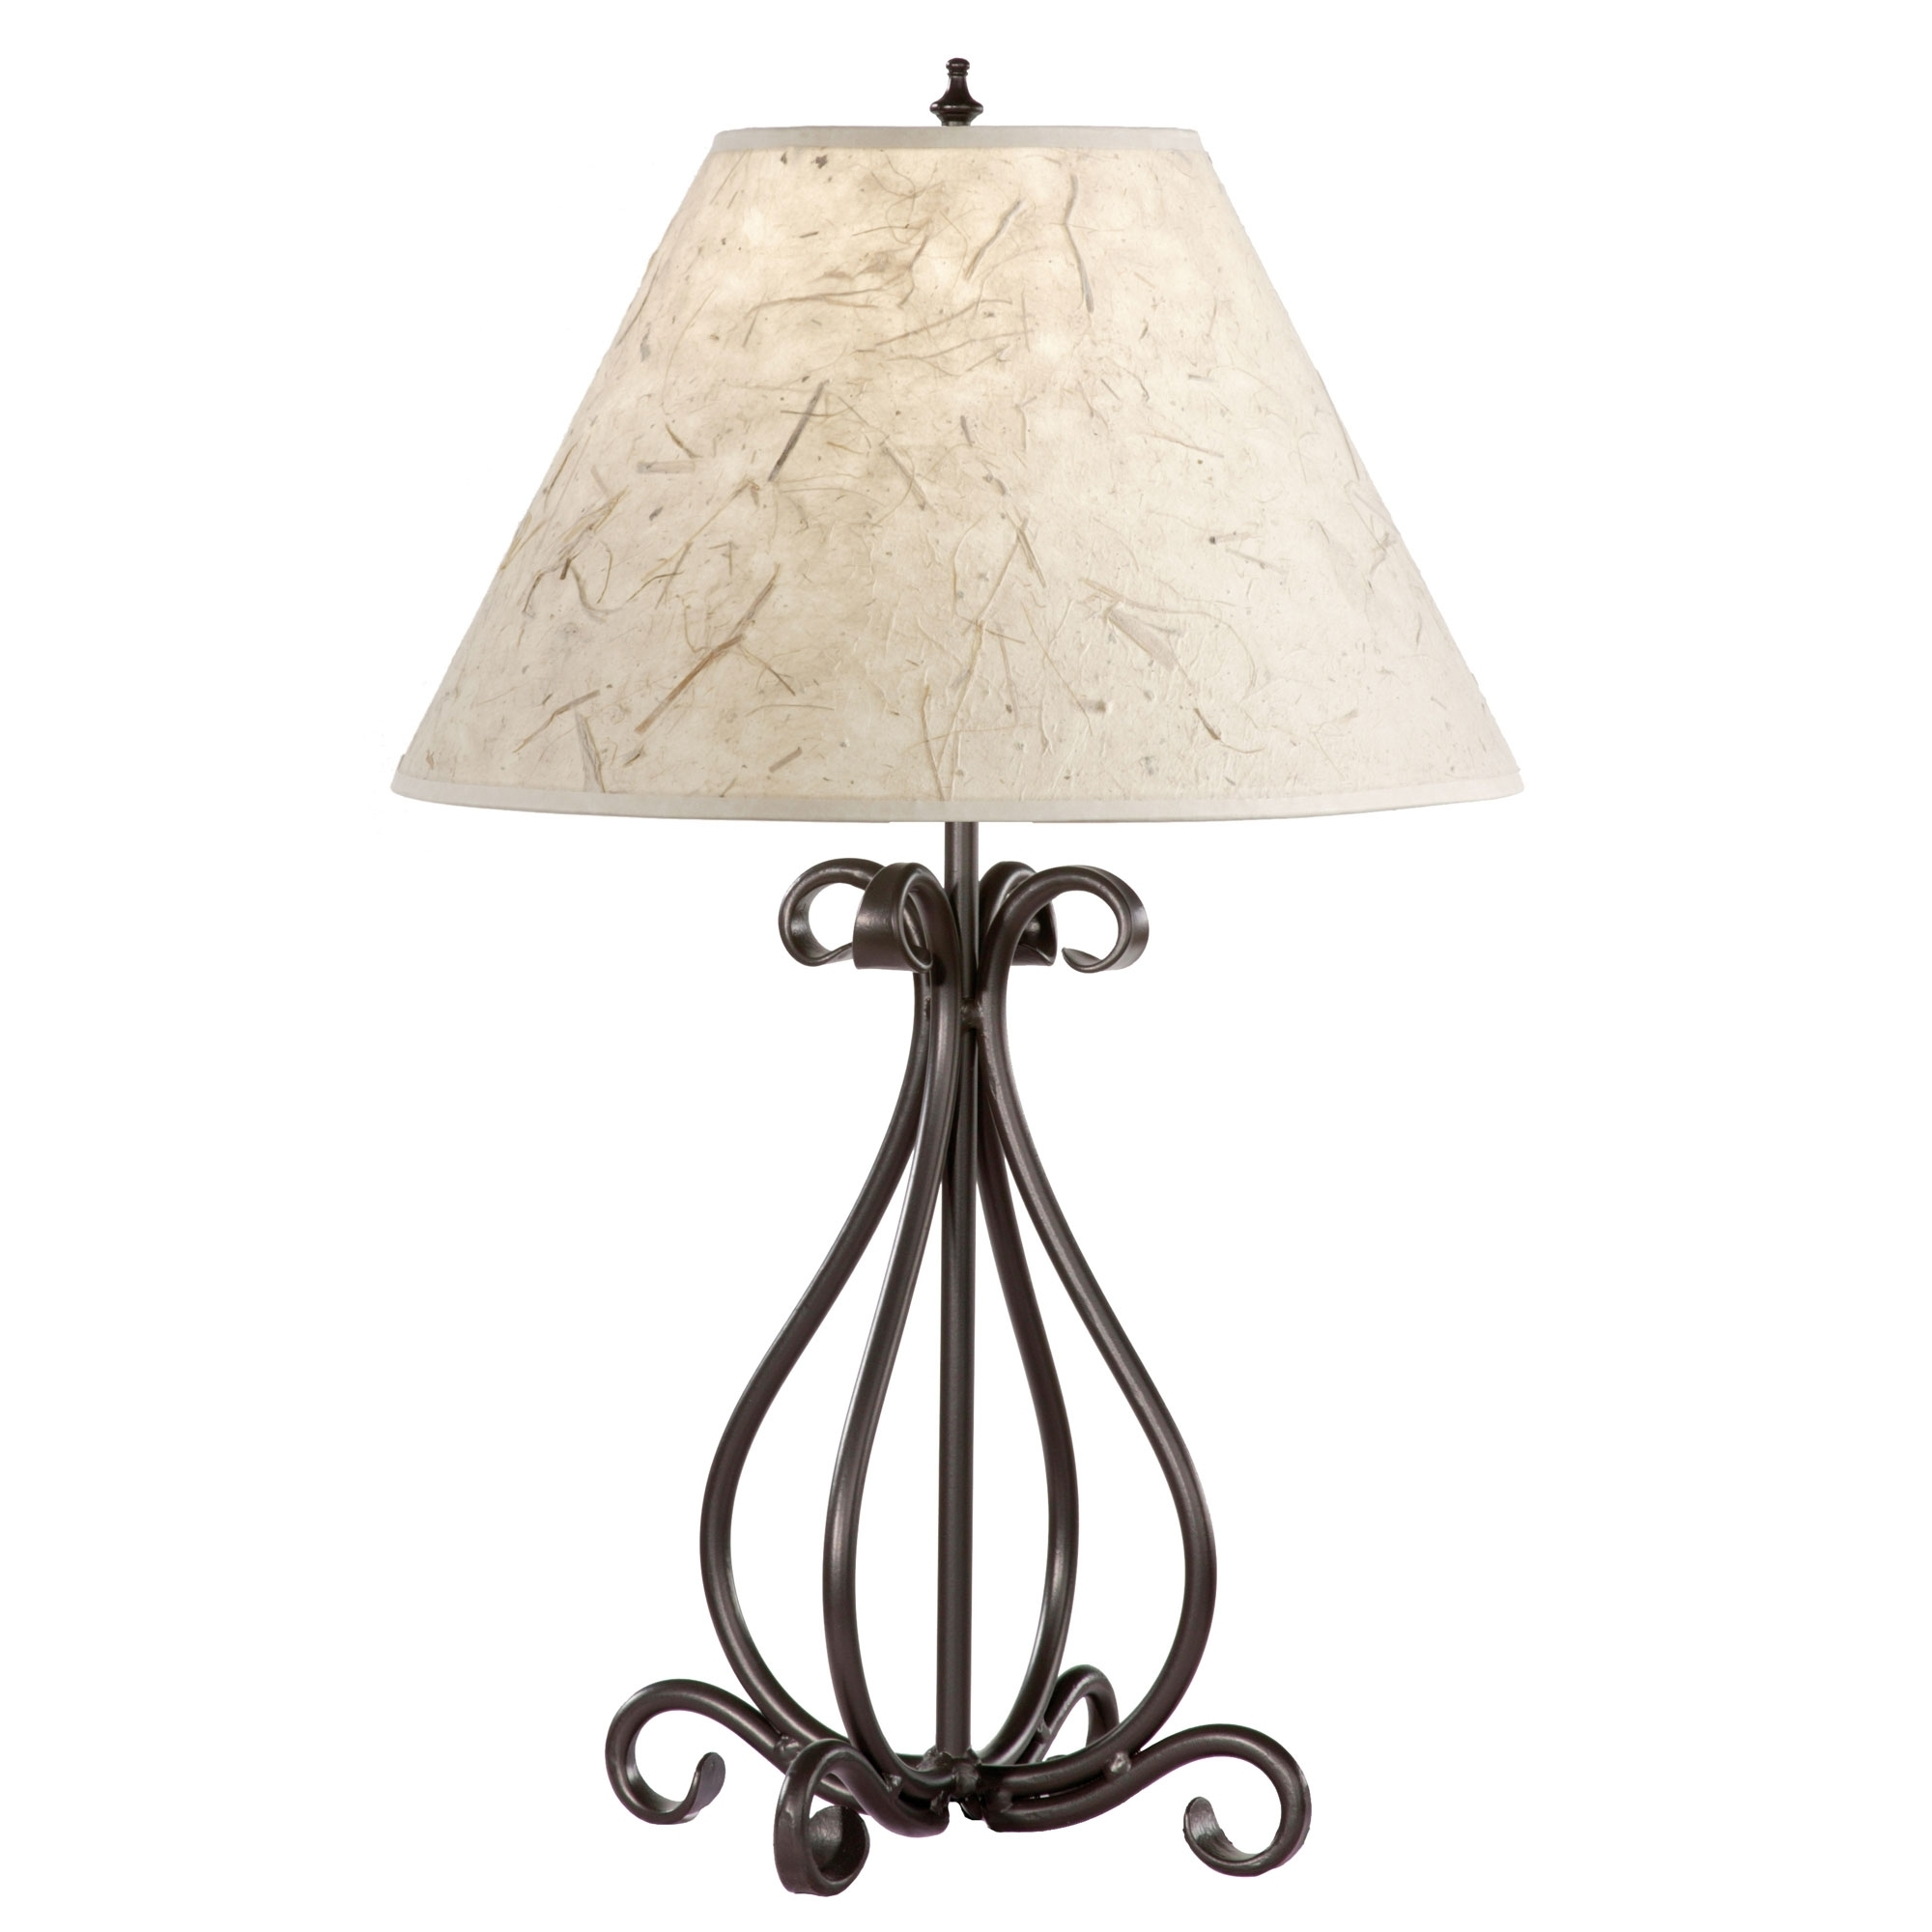 2018 Wrought Iron Living Room Table Lamps Intended For Table Lamps At Lowes Cordless Target Lamp Shades With Usb Port Uk (View 1 of 15)